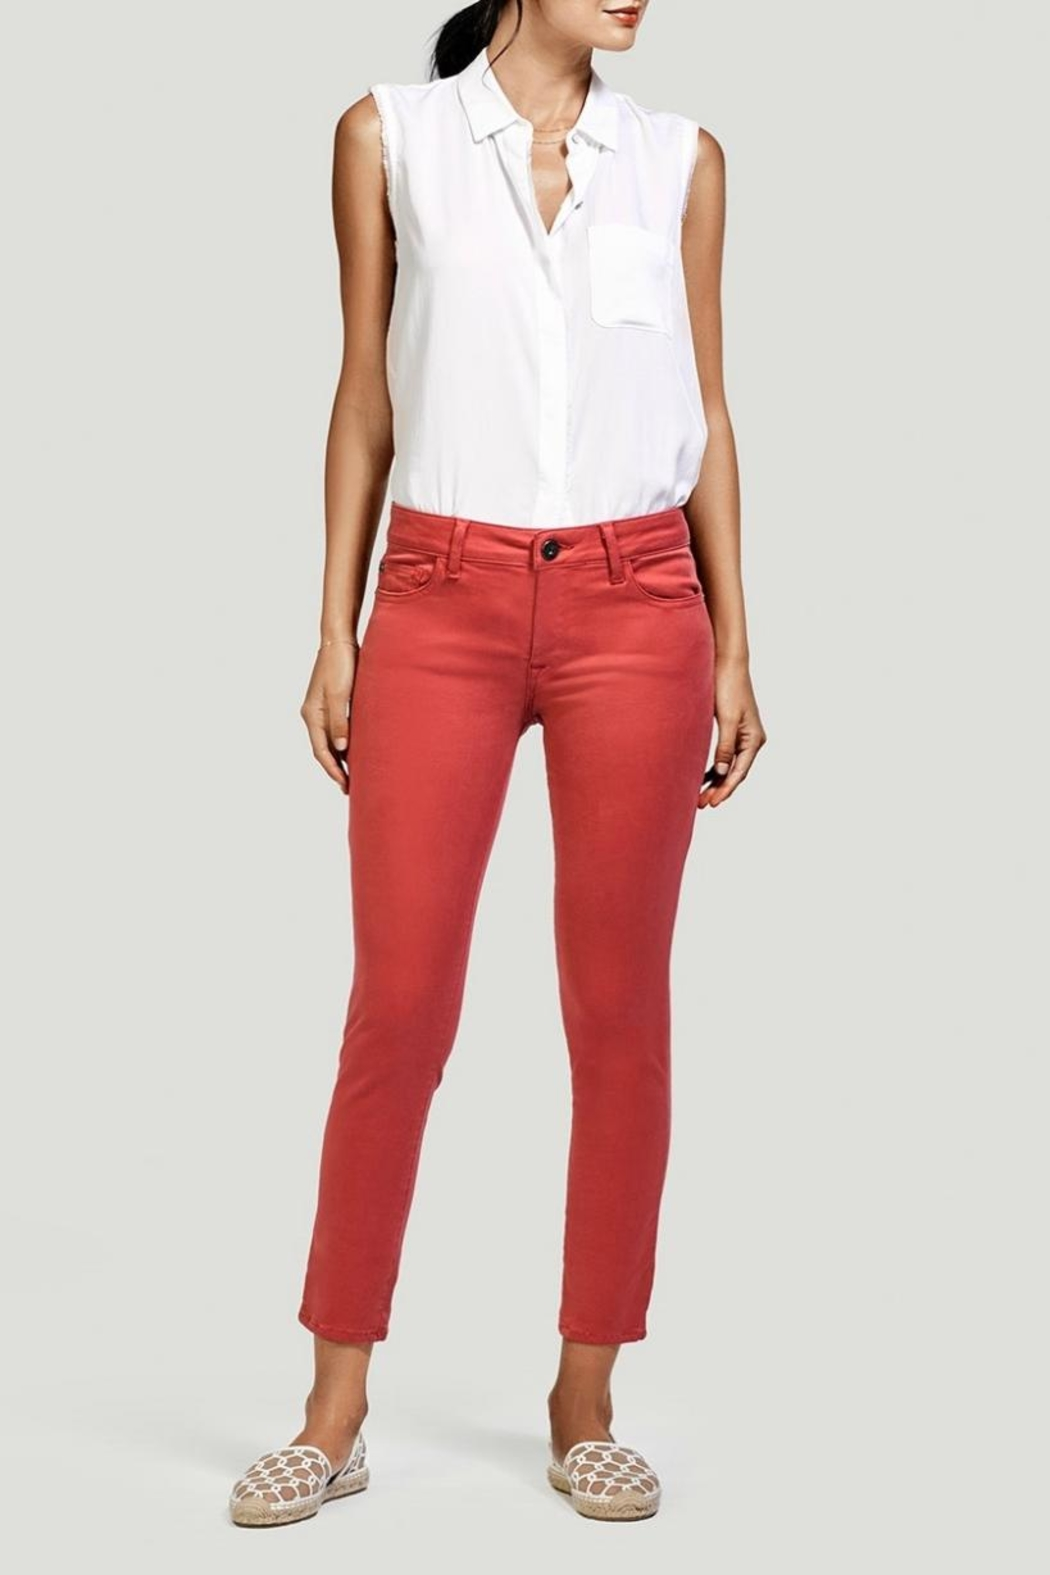 DL 1961 Coral Ankle Skinny Jeans - Side Cropped Image